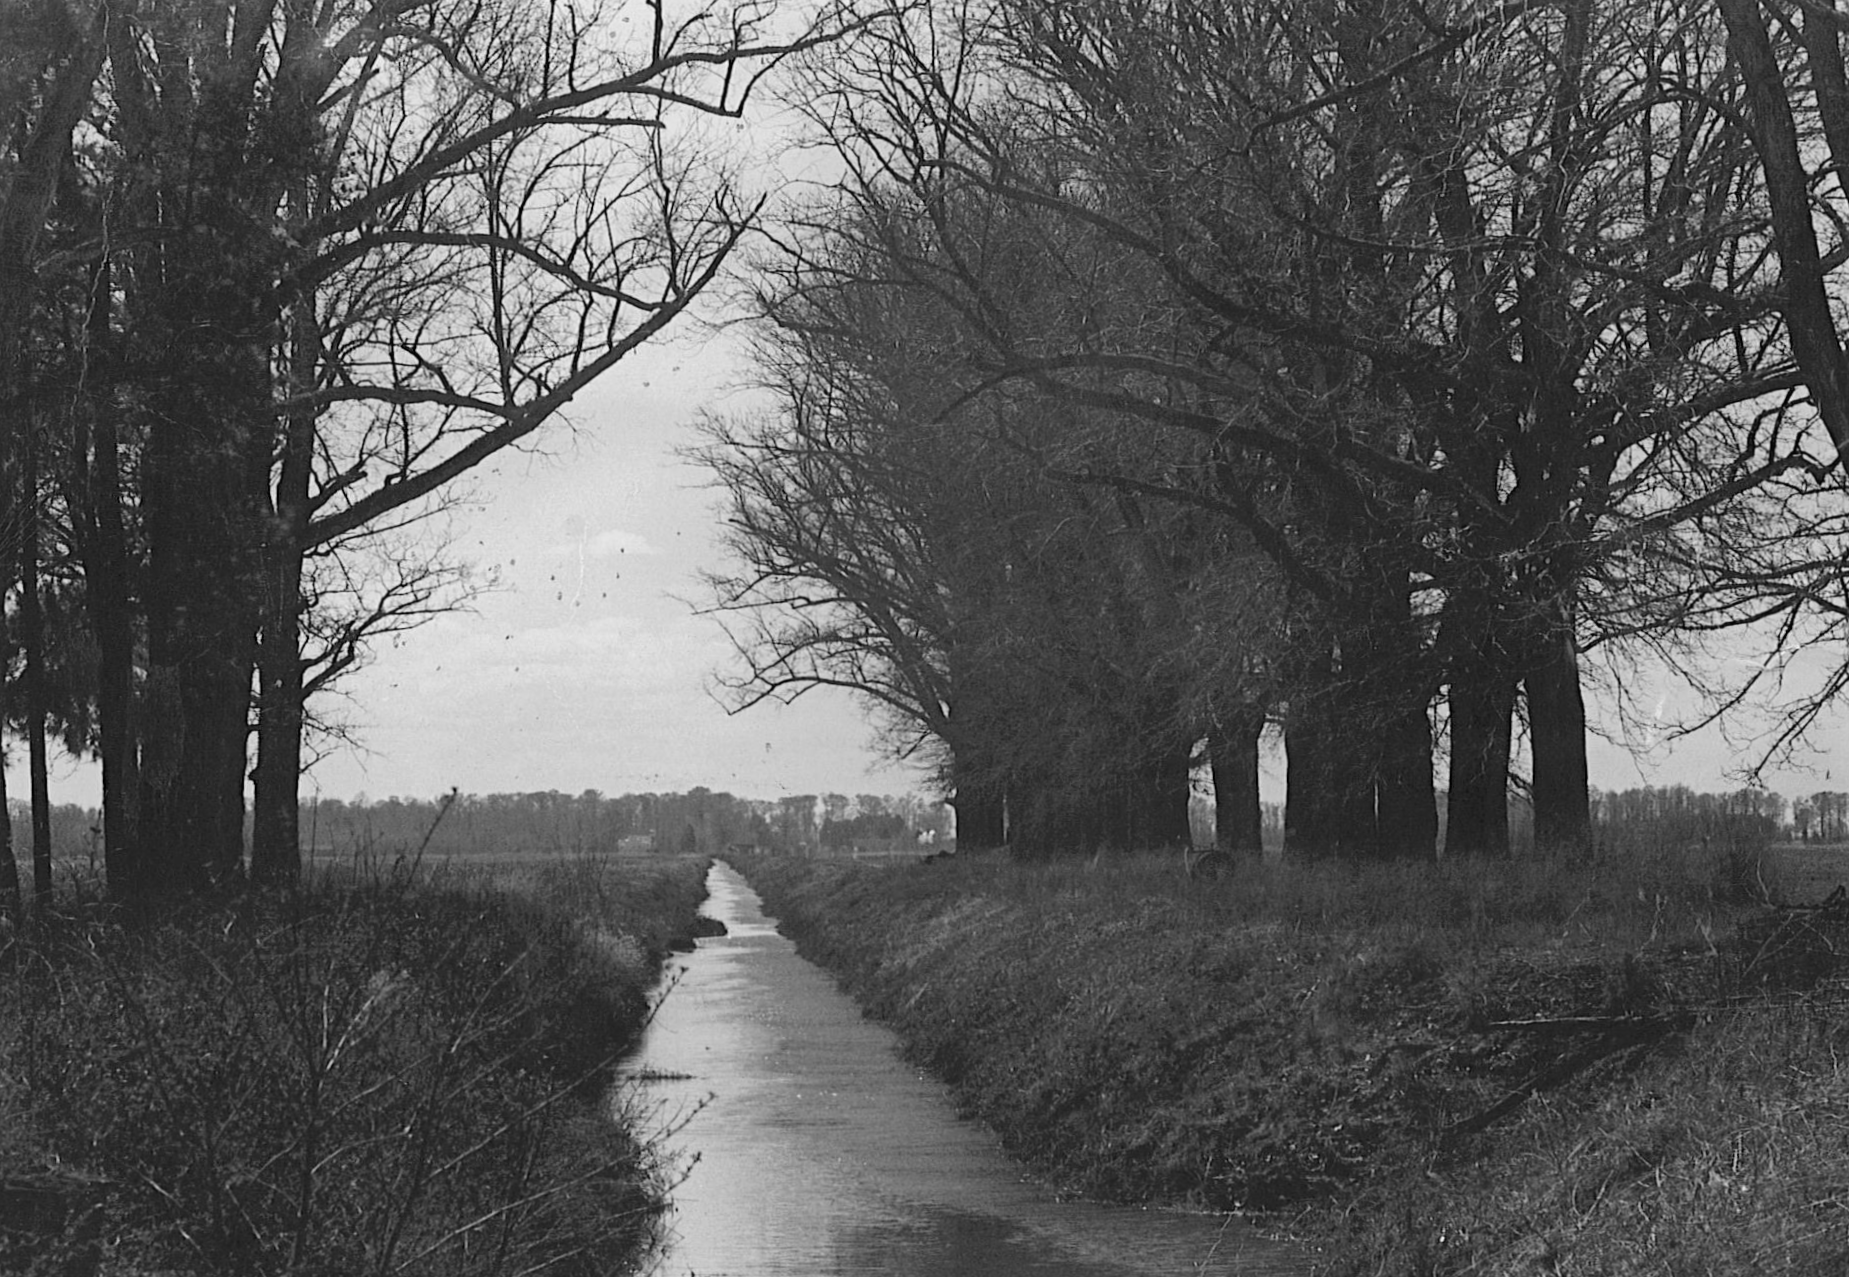 Black and White Photo of canal lined with trees